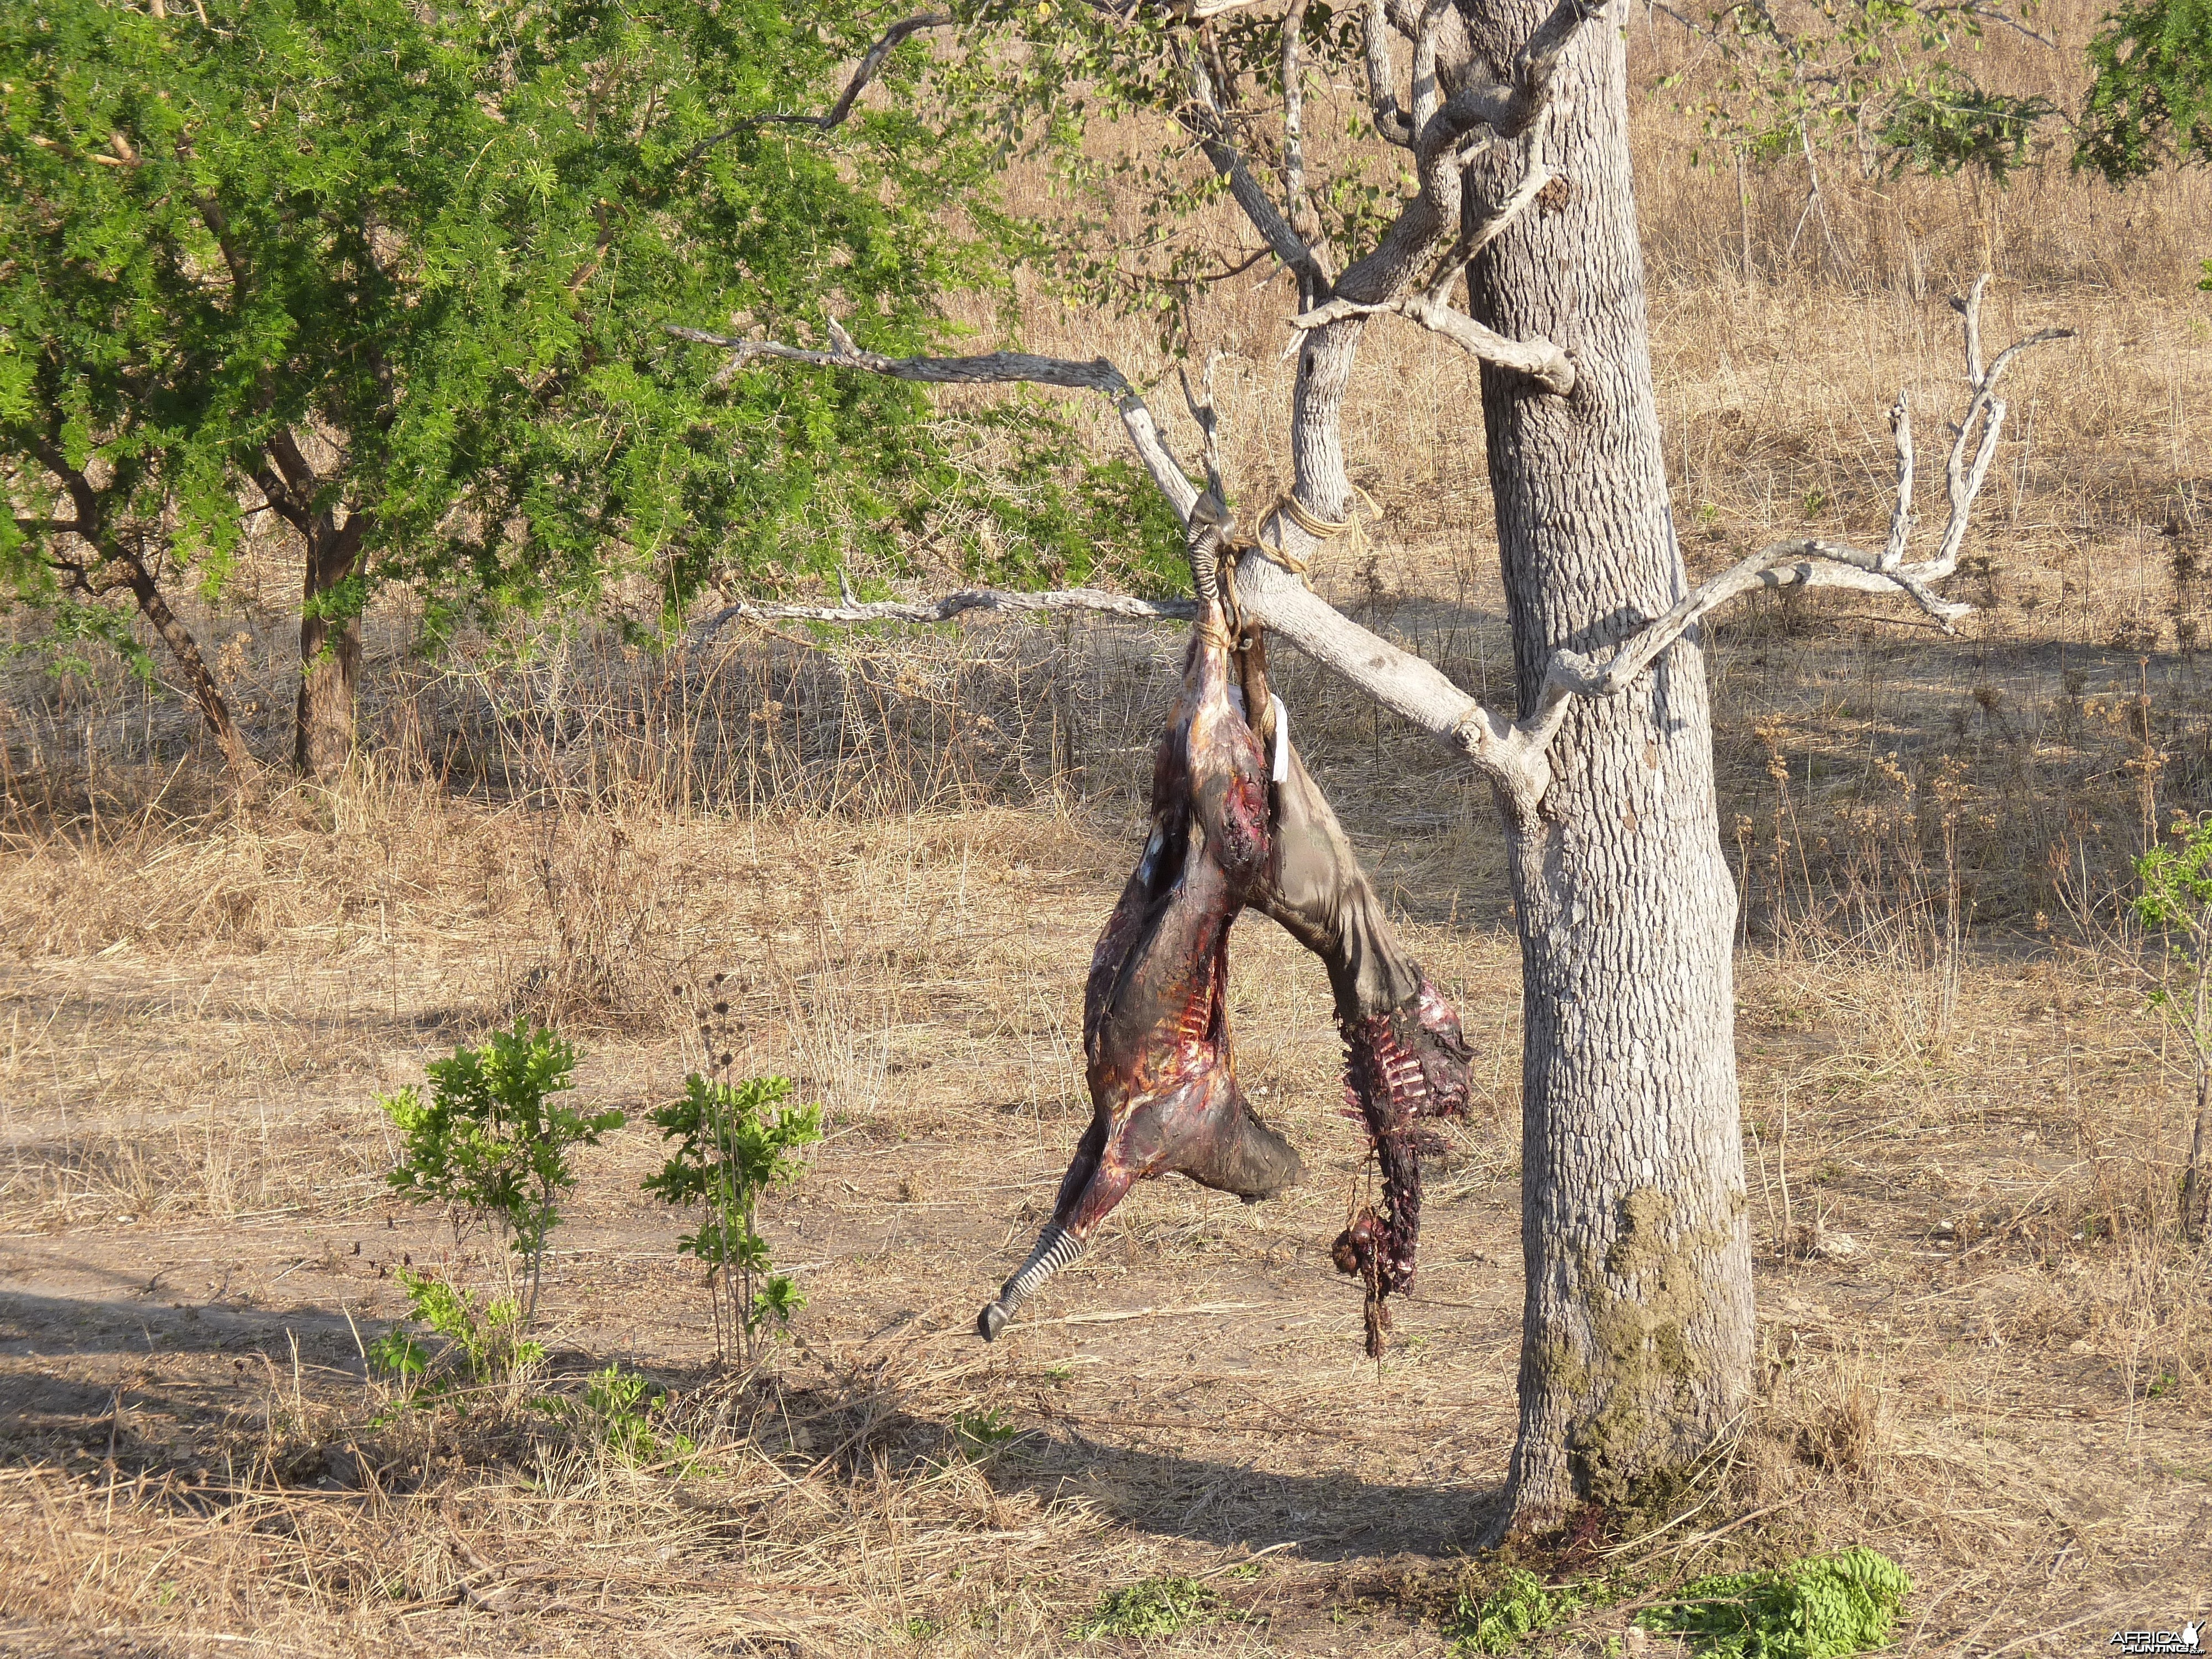 Baiting for dangerous game in Tanzania